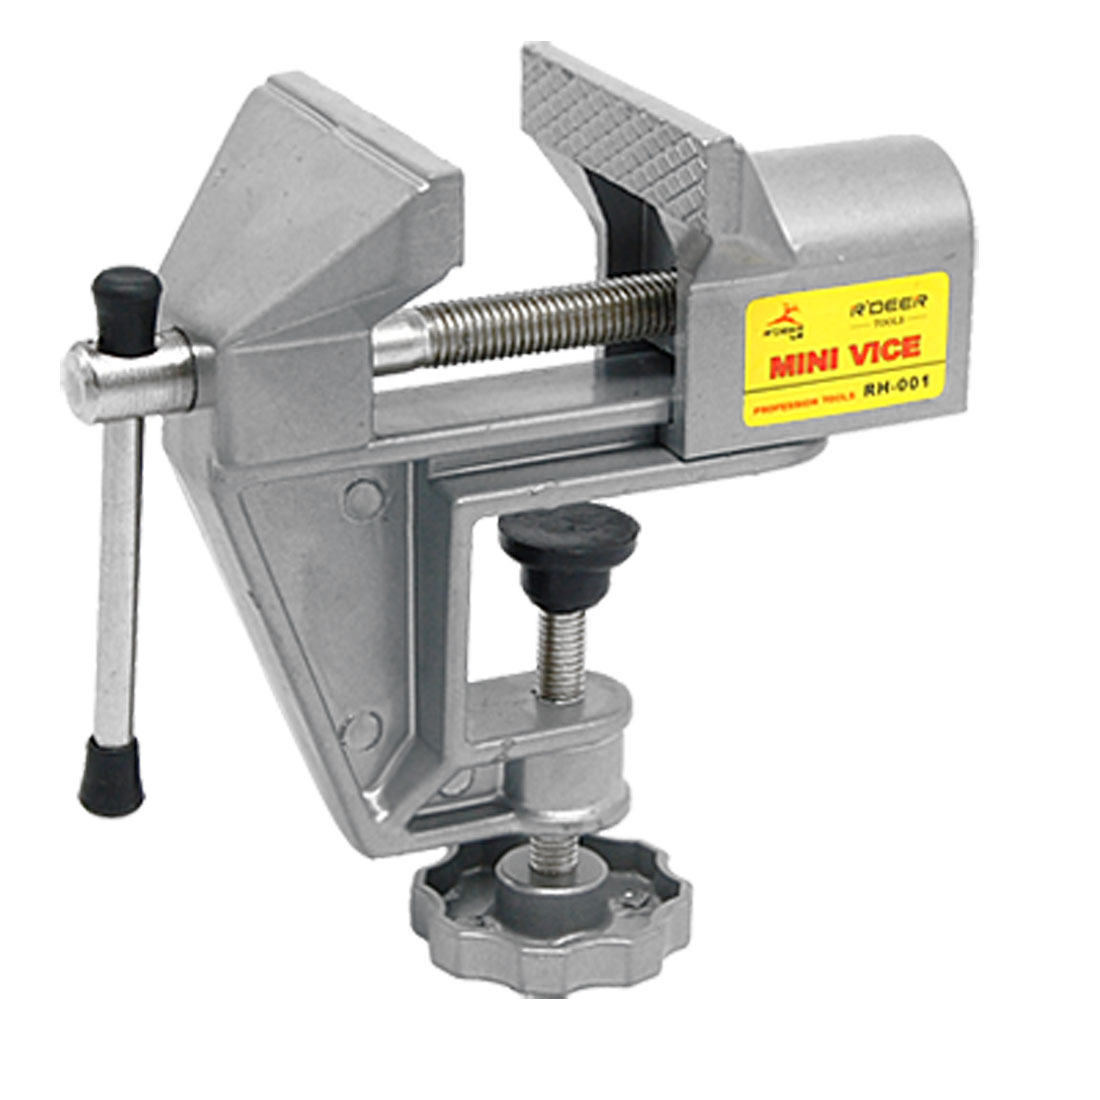 Mini Clamp On Bench Vice for Jewellers Hobby Craft